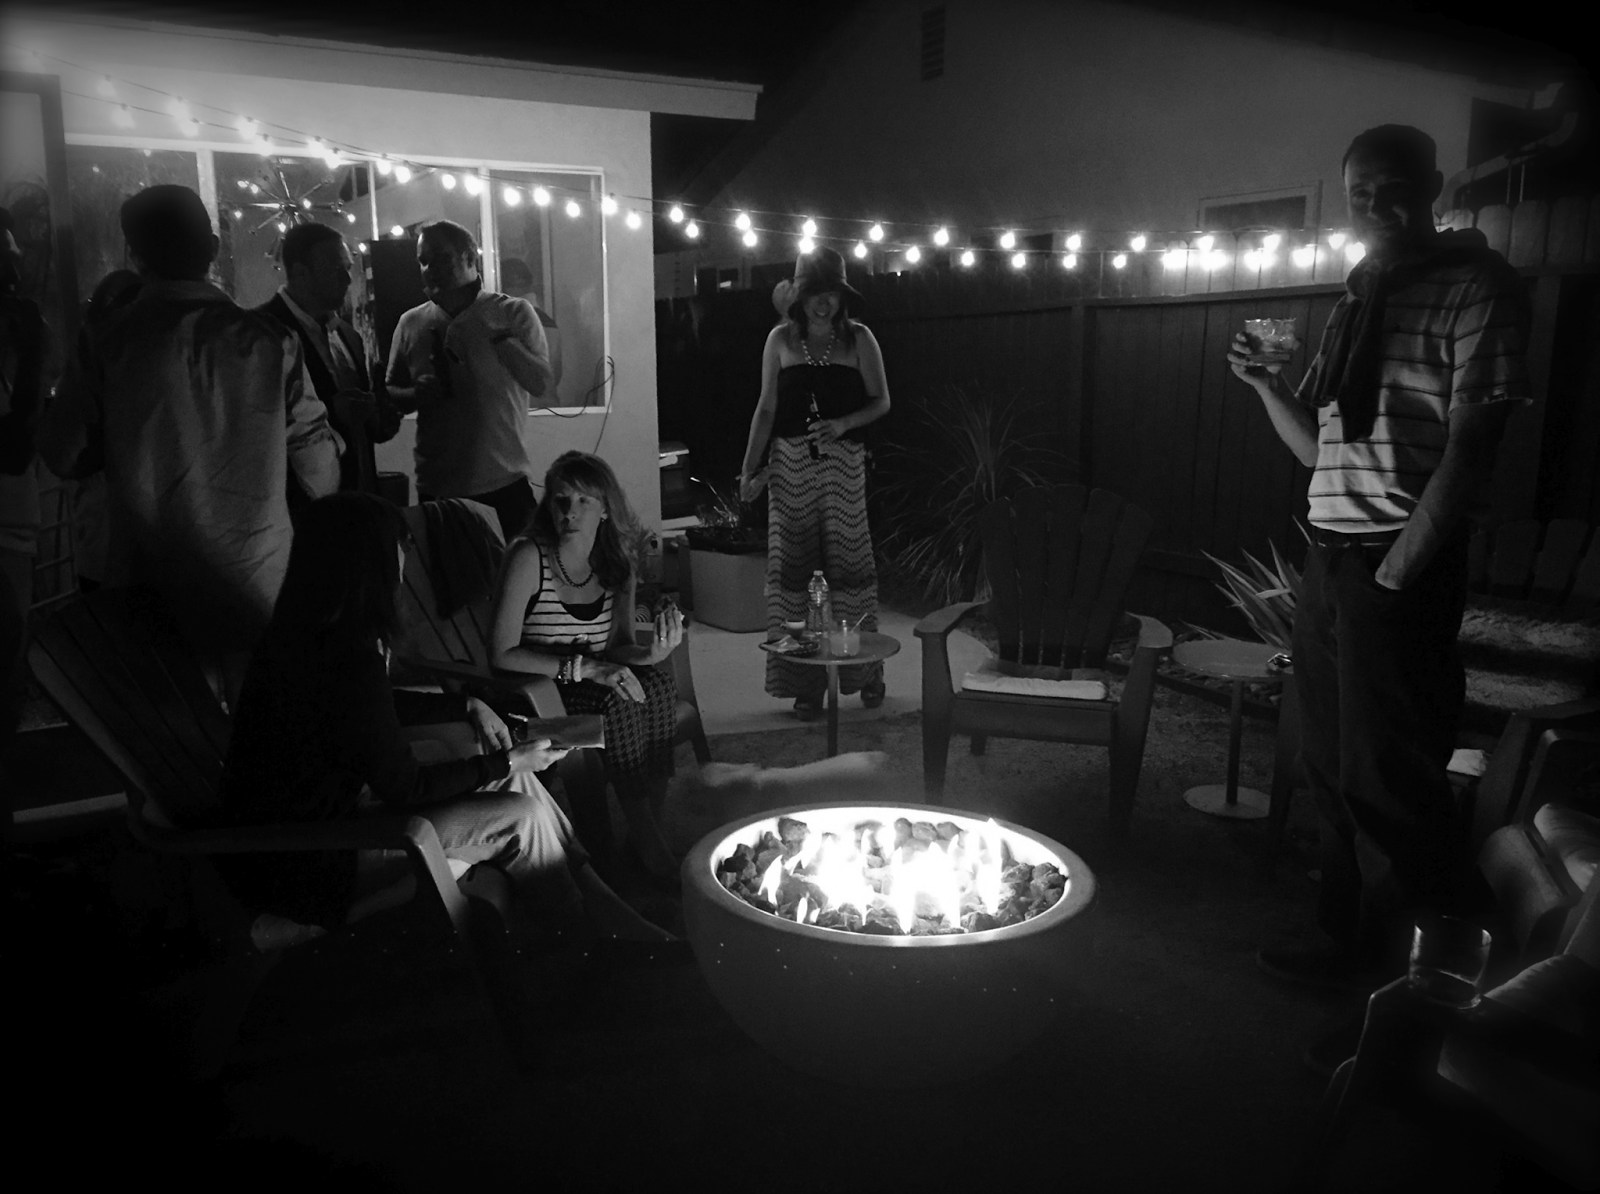 Fire Pit, String Lights, Cocktail Party